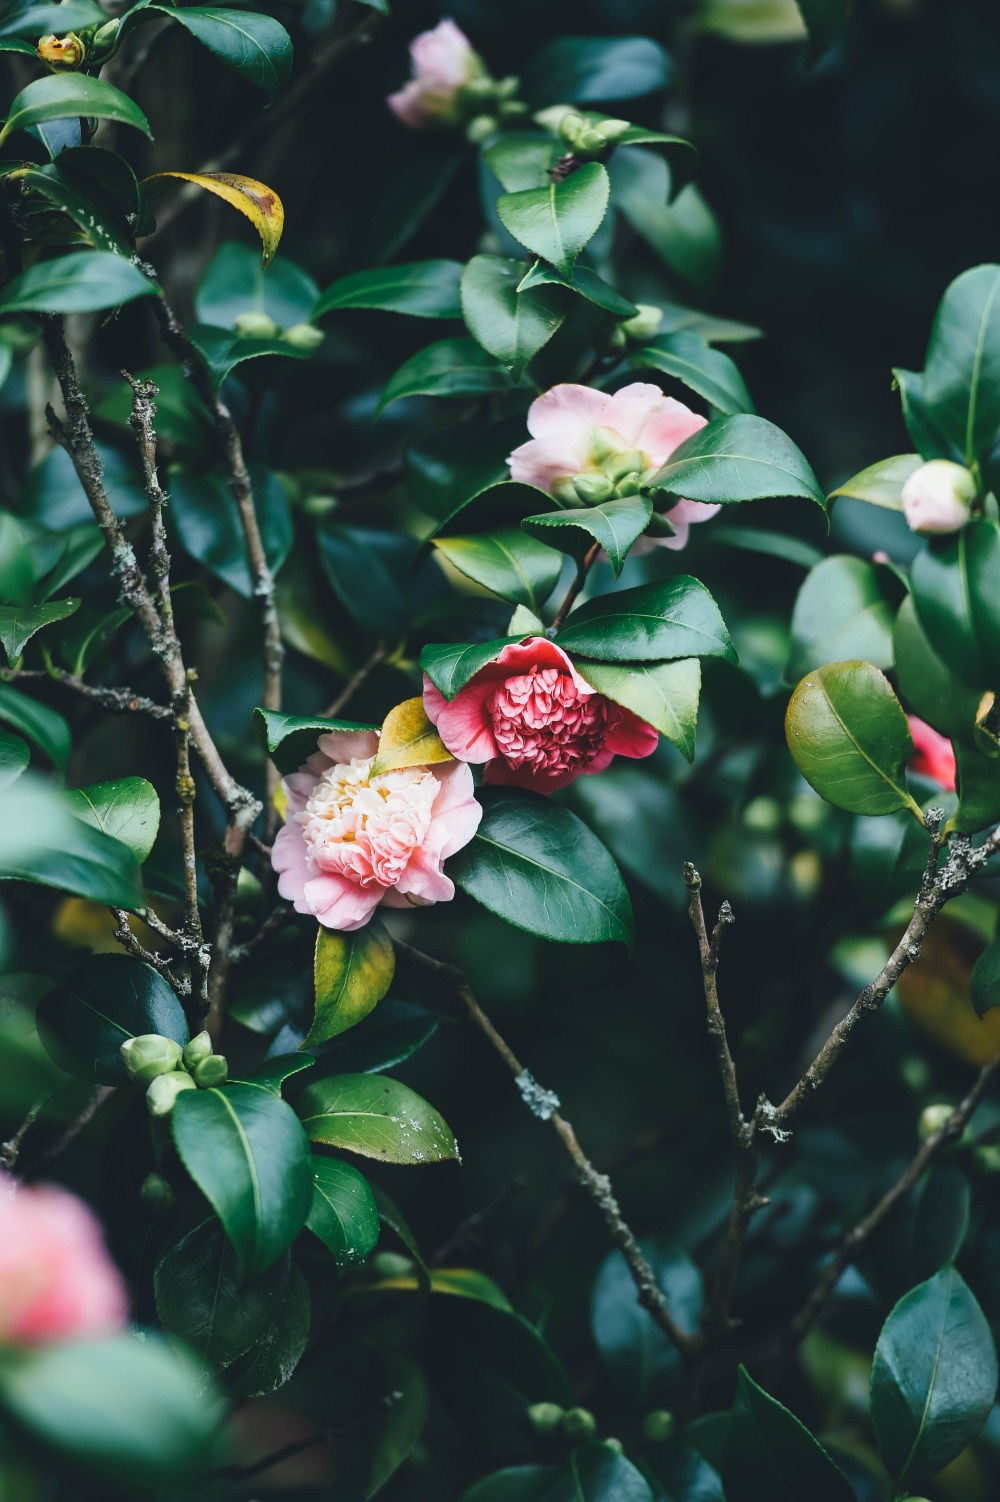 iPhone wallpapers | 19 best free iphone wallpaper, plant, grey, and flora photos on Unsplash